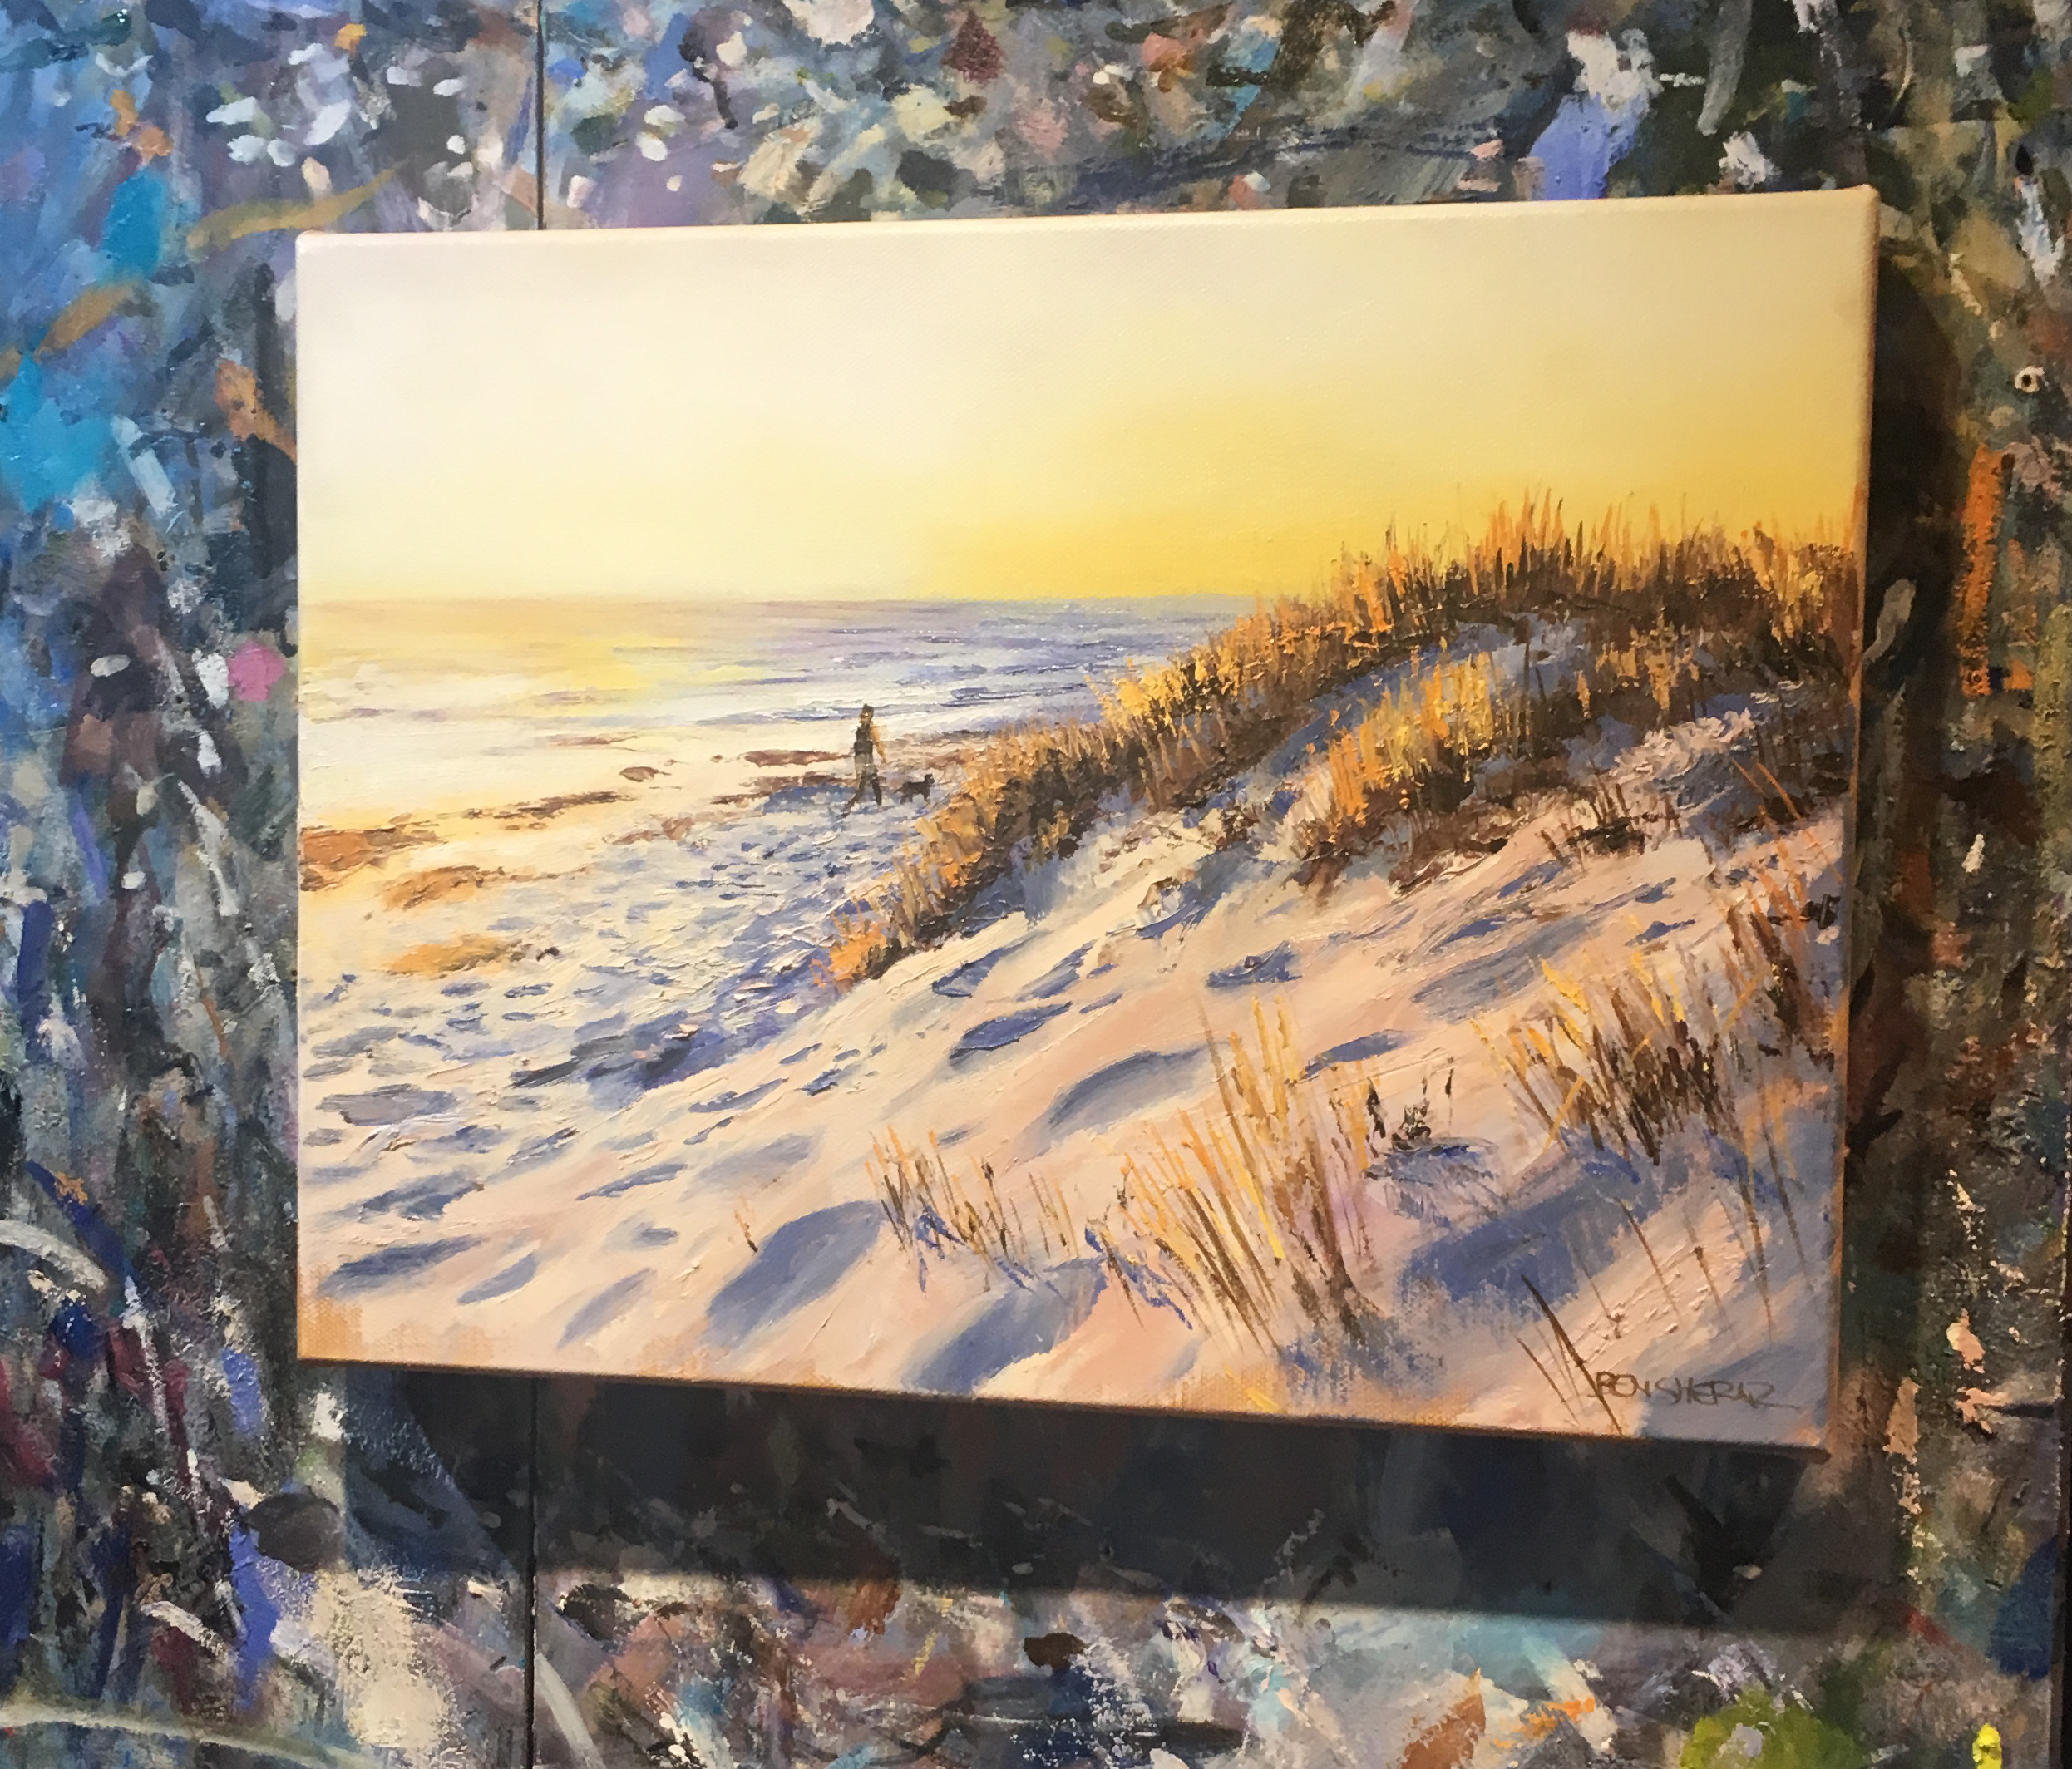 An original oil painting of a beach at dusk by Western Australian artist Ben Sherar